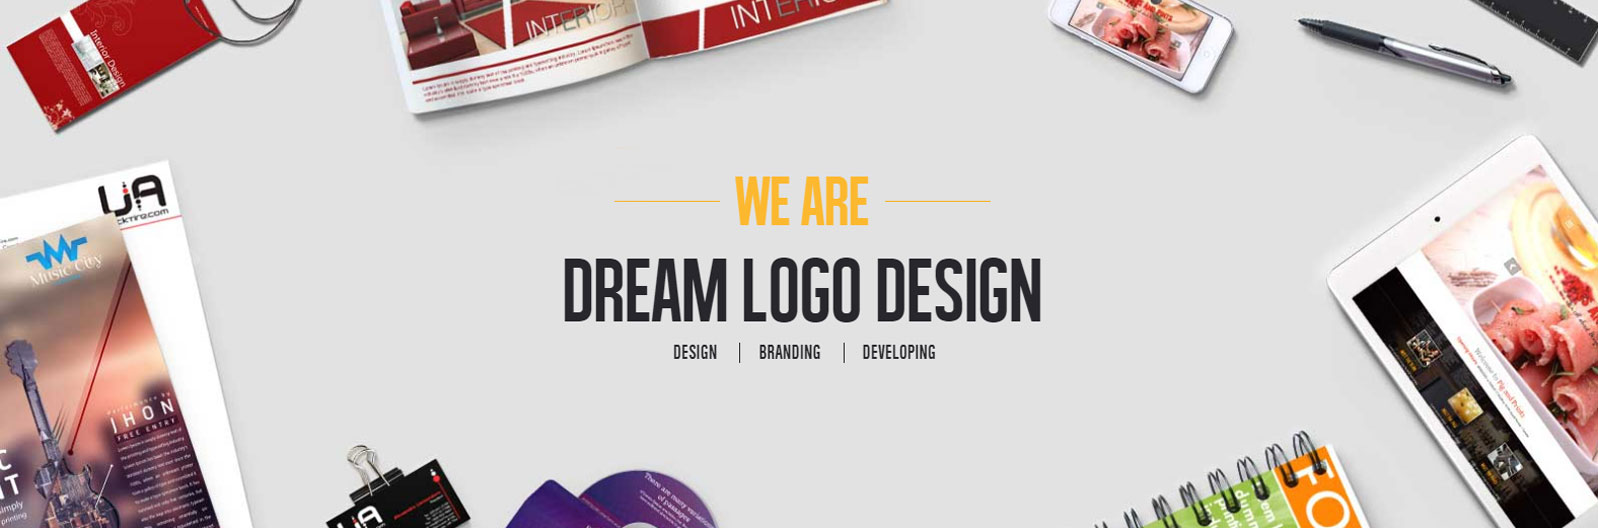 Cleanette Logo Design – DreamLogoDesign